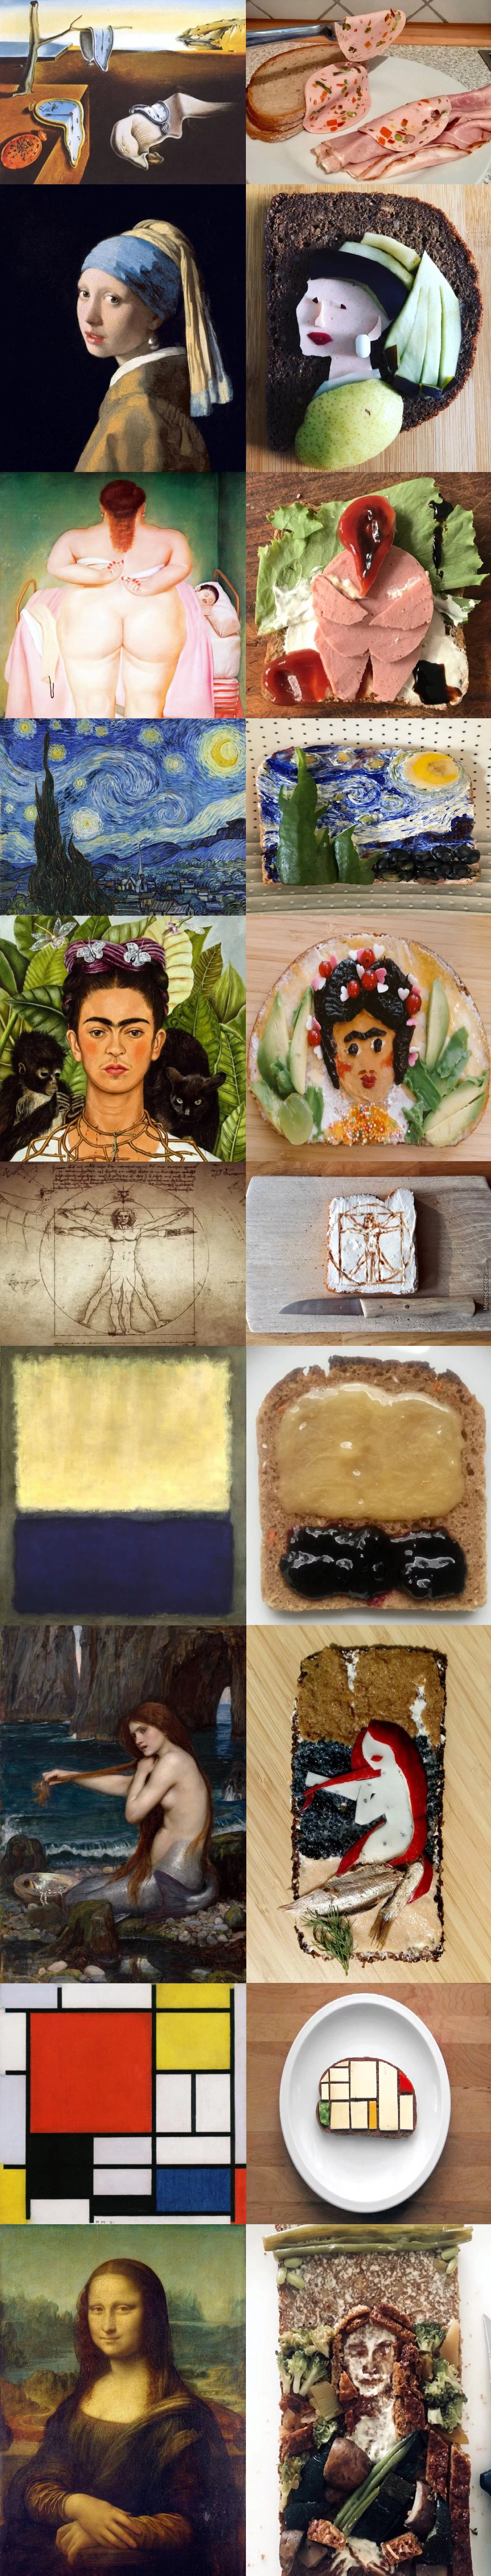 Food Art Classical Painting Edition By Kess Ex-Müller